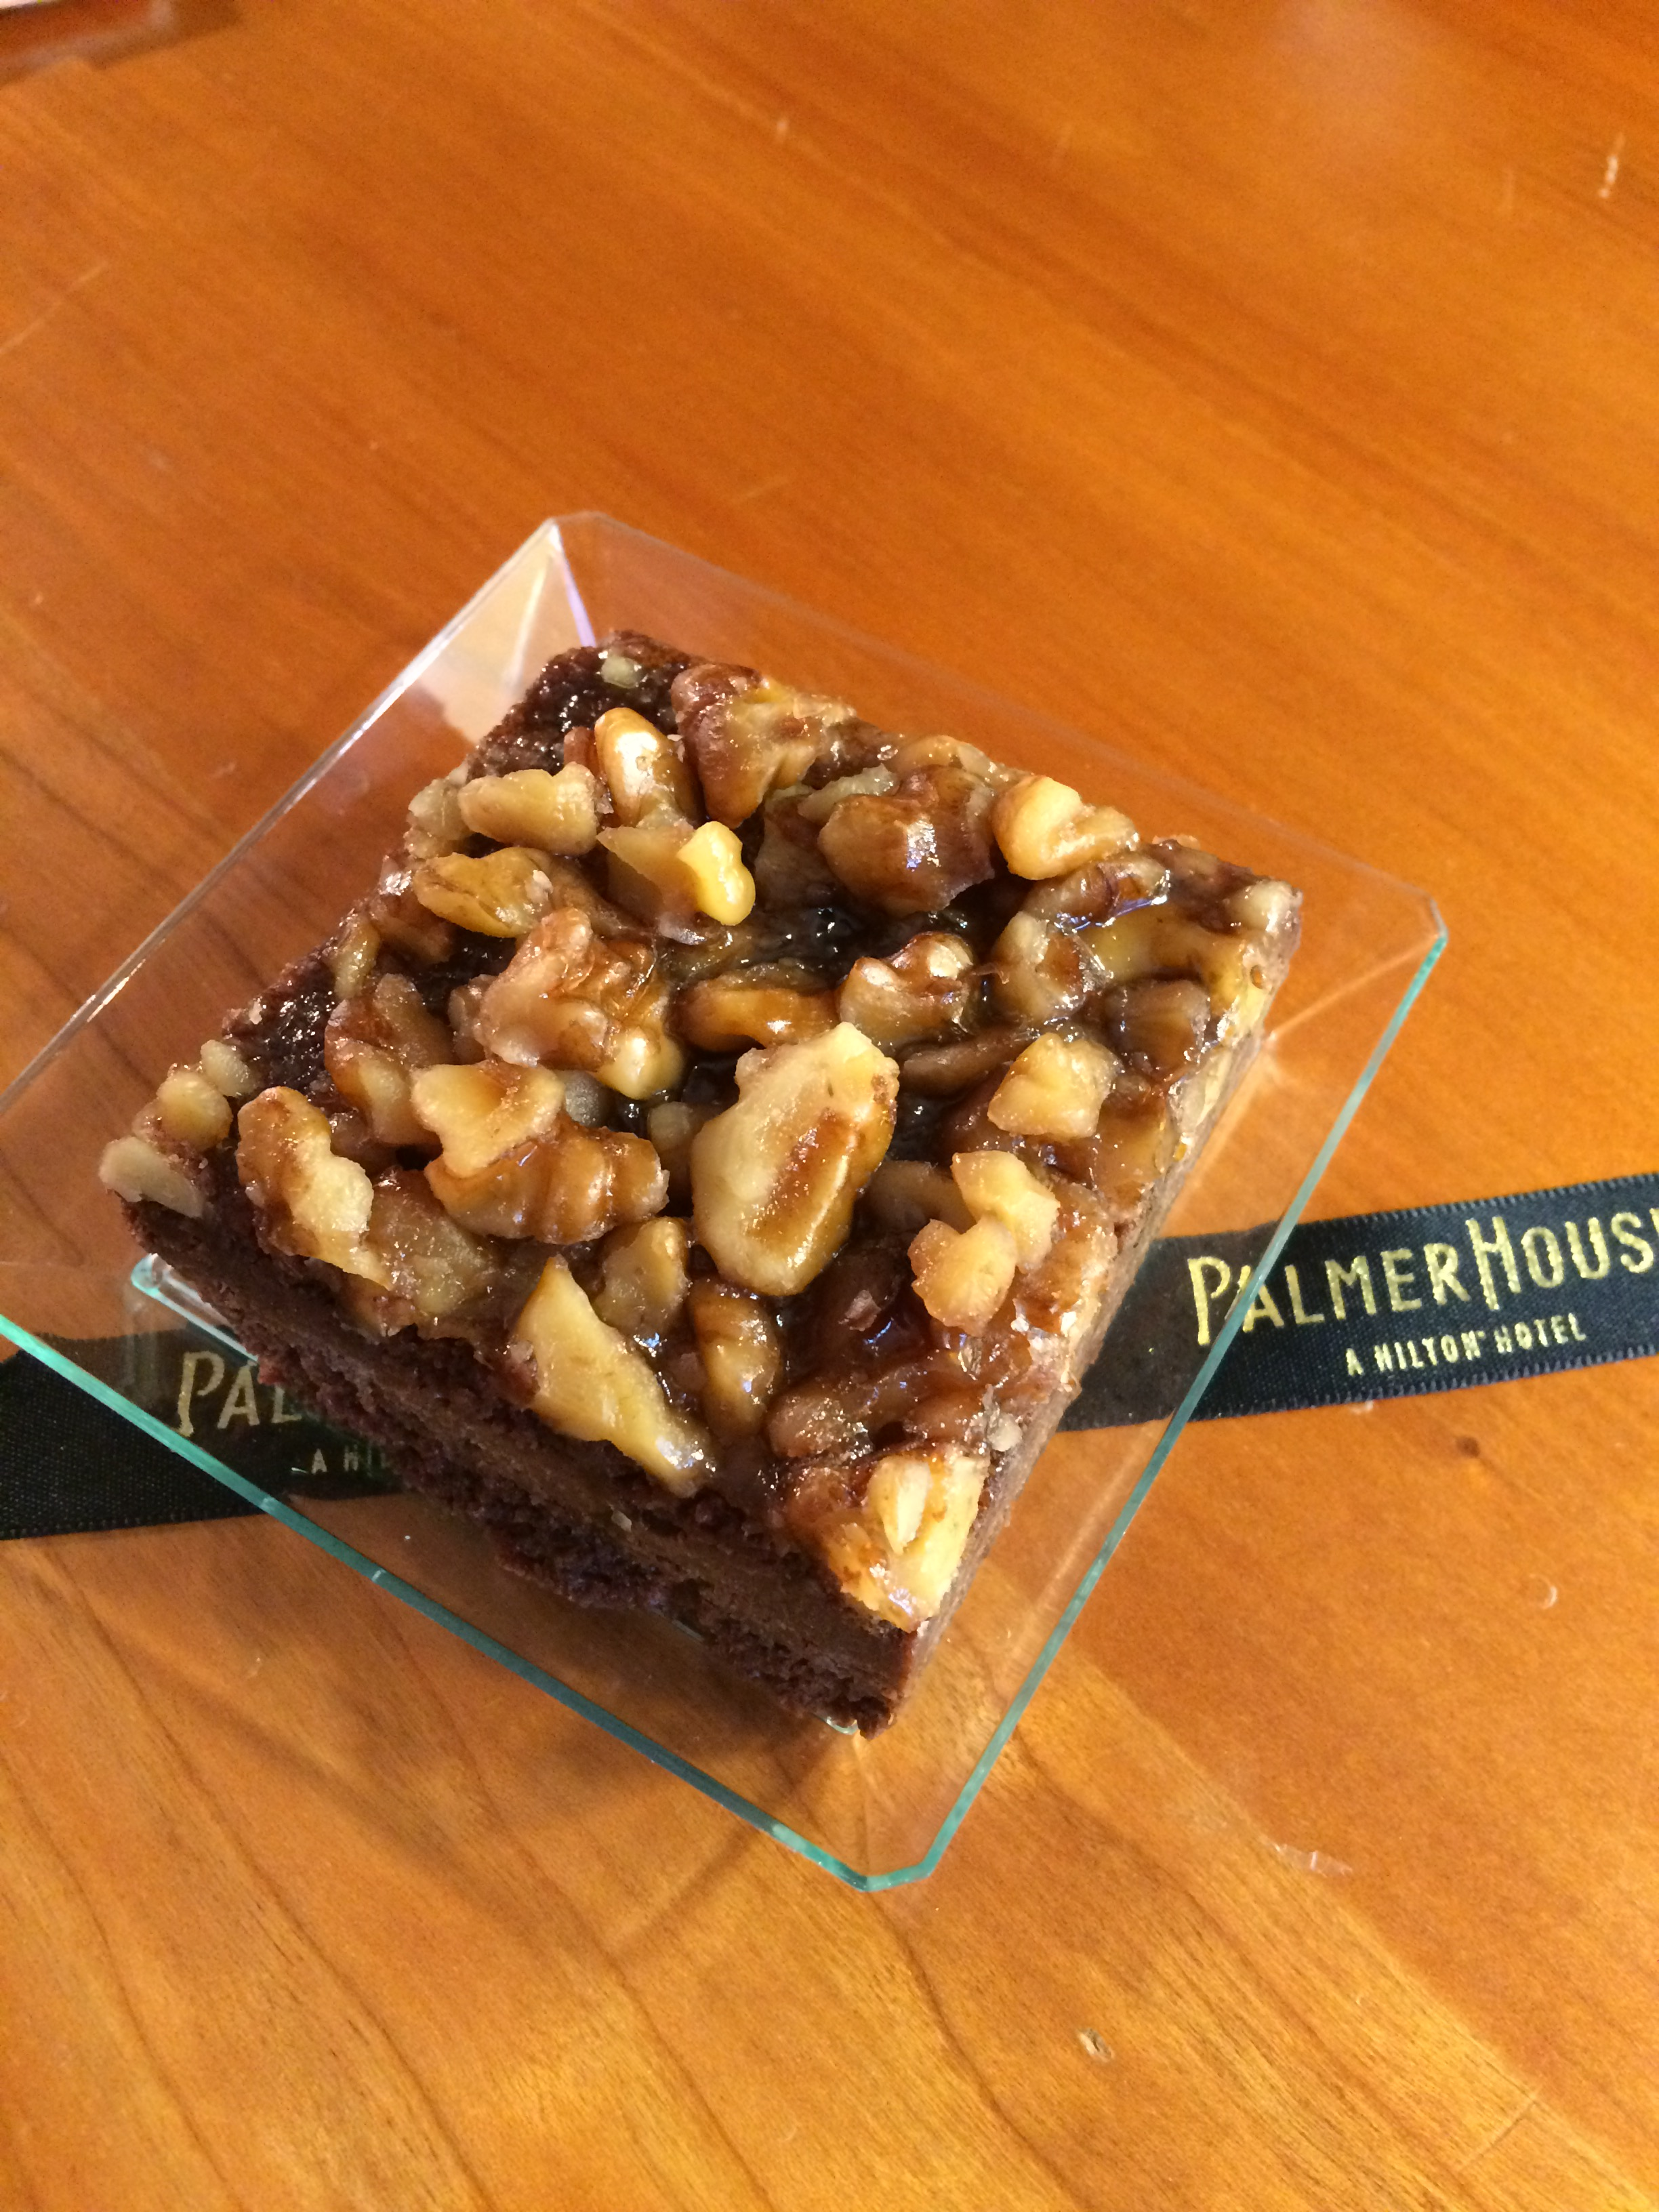 Palmer House Chicago: Home of the Legendary Brownie